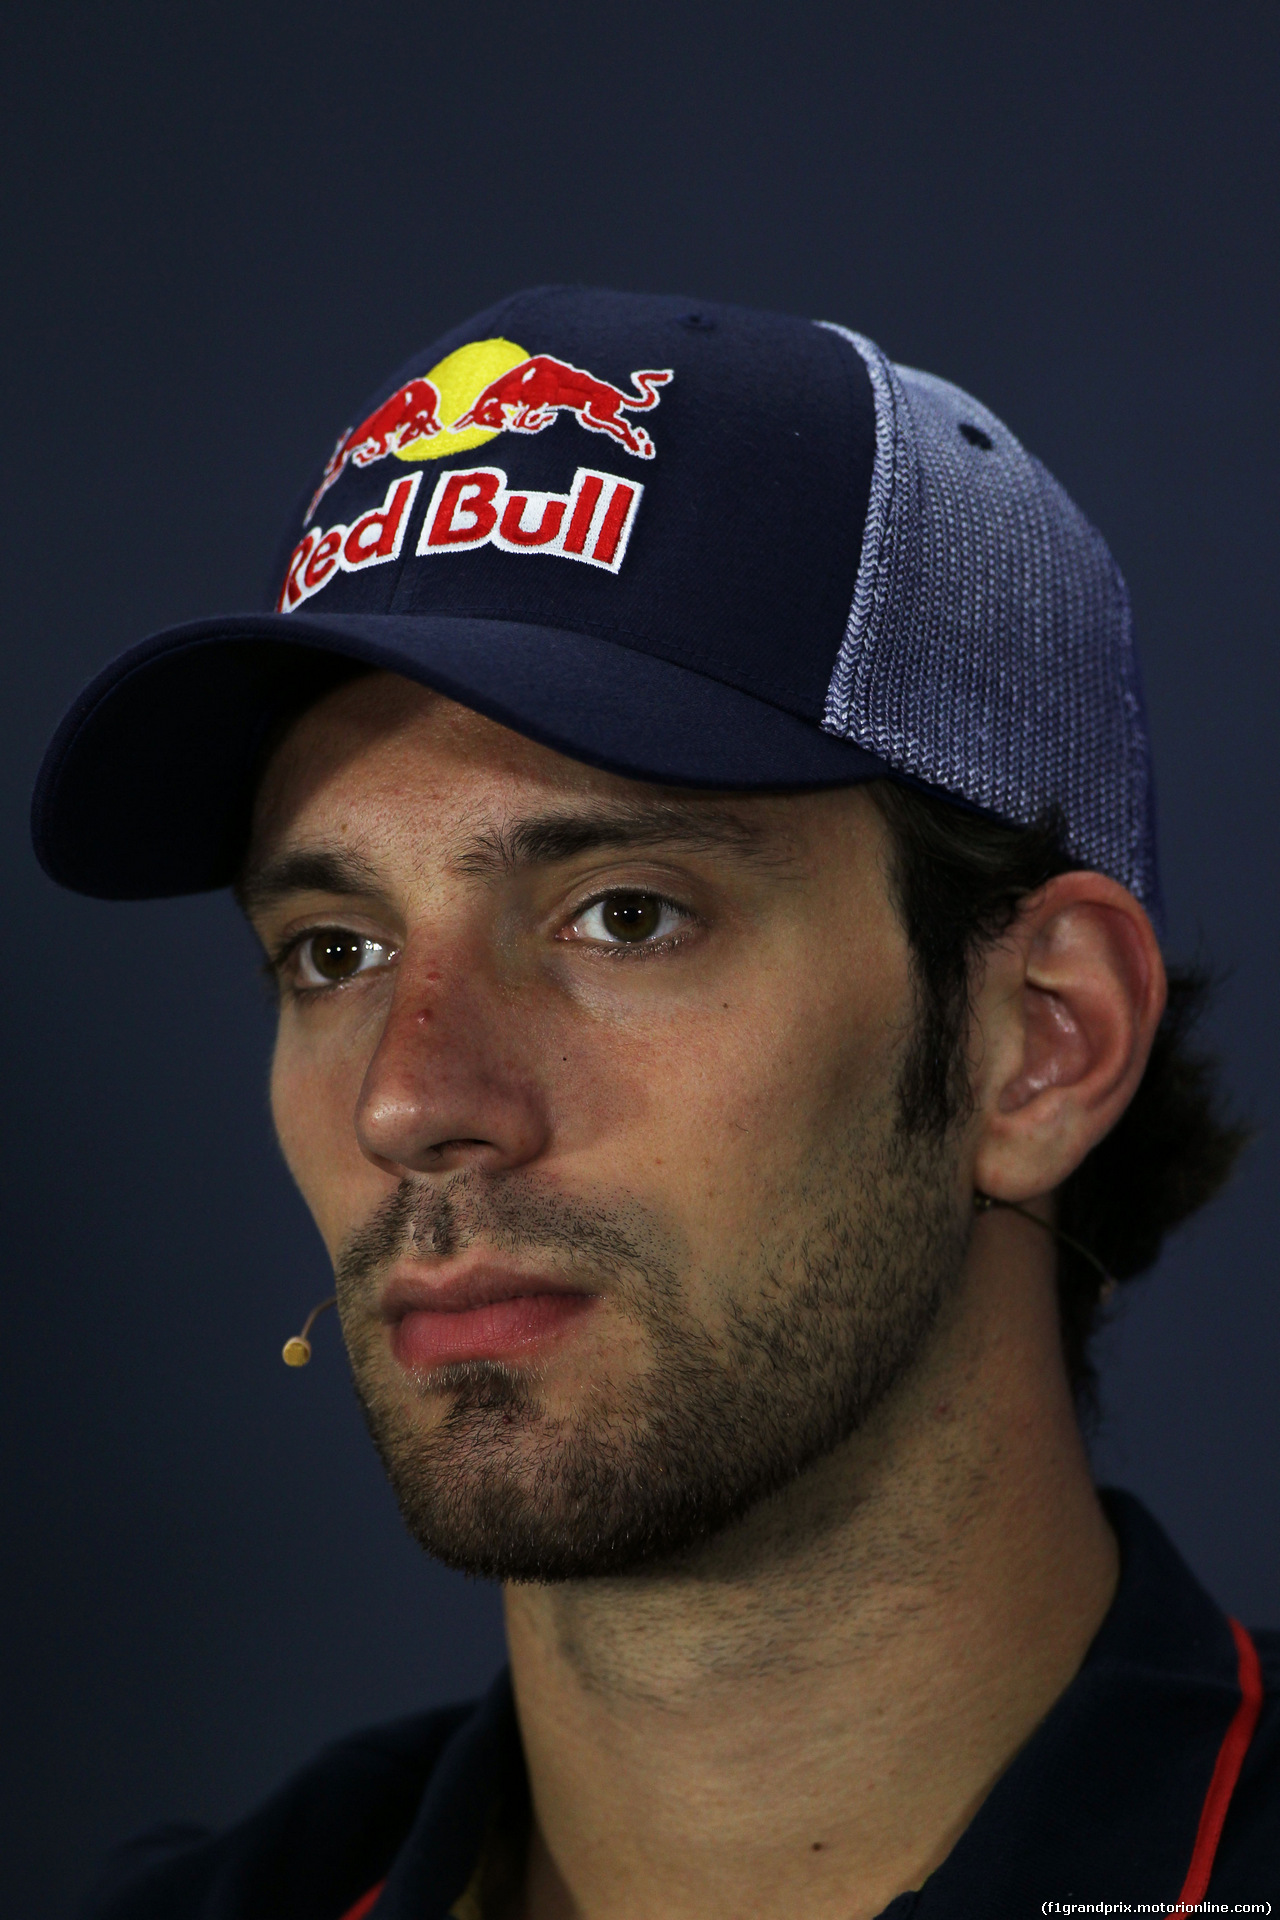 GP BAHRAIN, Jean-Eric Vergne (FRA) Scuderia Toro Rosso in the FIA Press Conference. 03.04.2014. Formula 1 World Championship, Rd 3, Bahrain Grand Prix, Sakhir, Bahrain, Preparation Day.